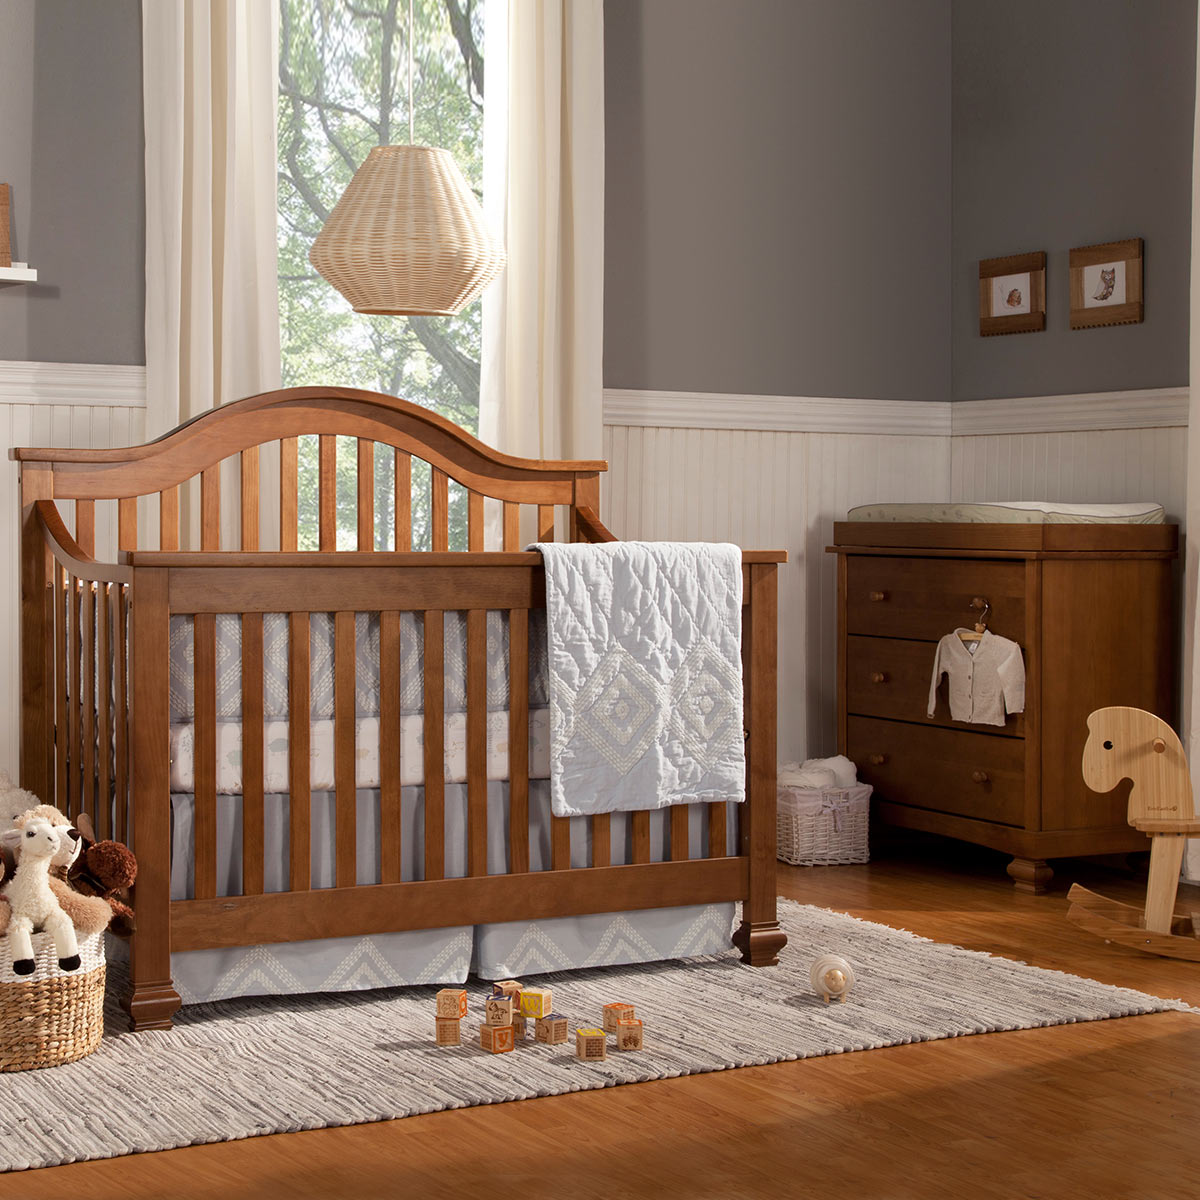 Baby cribs with matching dresser - Davinci 2 Piece Nursery Set Clover 4 In 1 Convertible Crib And Dresser